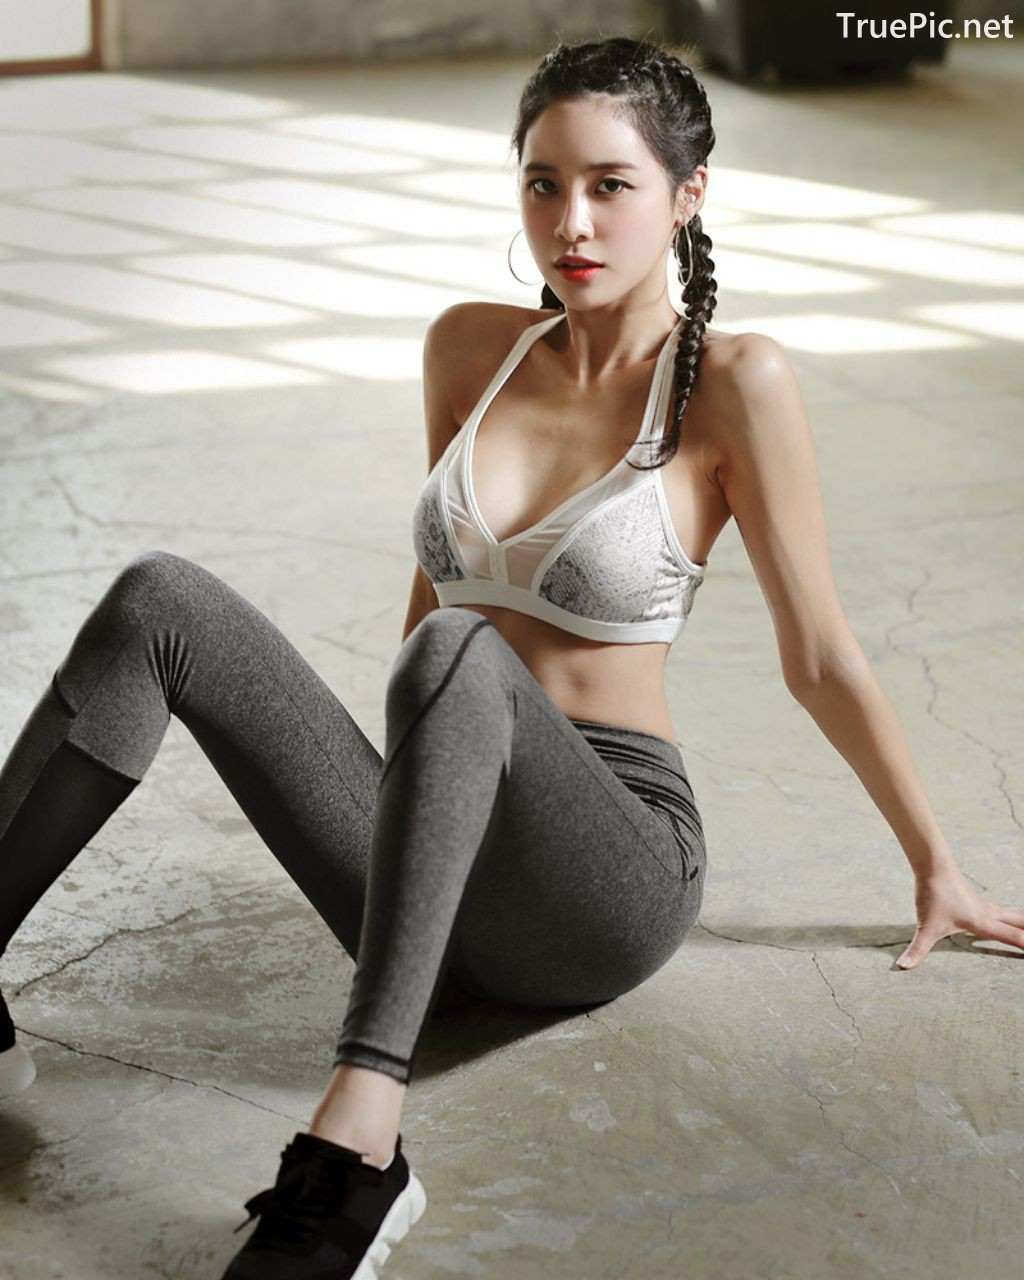 Image-Korean-Fashion-Model-Ju-Woo-Fitness-Set-Collection-TruePic.net- Picture-2